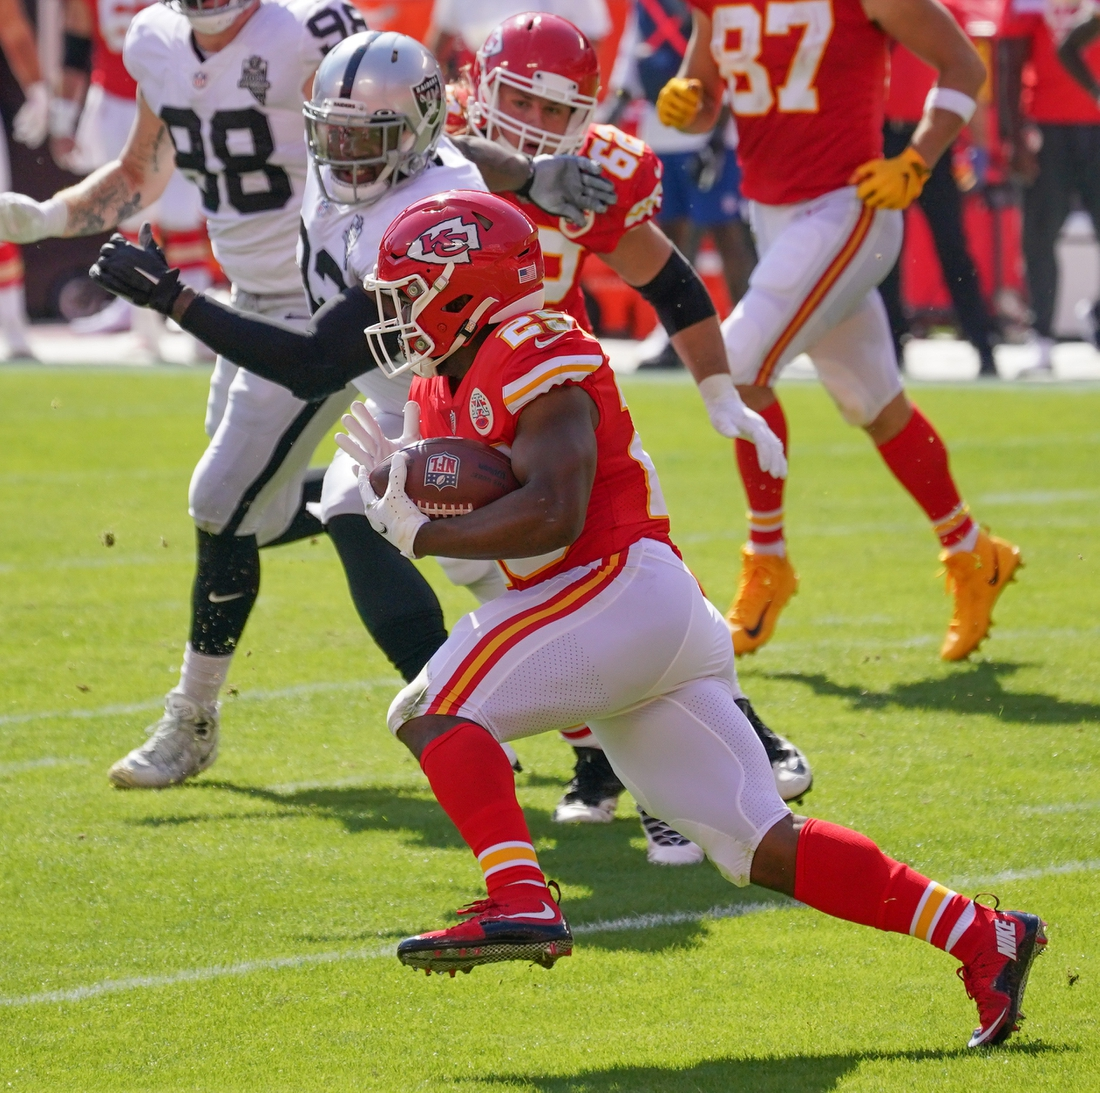 Oct 11, 2020; Kansas City, Missouri, USA; Kansas City Chiefs running back Clyde Edwards-Helaire (25) runs the ball as Las Vegas Raiders defensive tackle Daniel Ross (93) chases during the game at Arrowhead Stadium. Mandatory Credit: Denny Medley-USA TODAY Sports